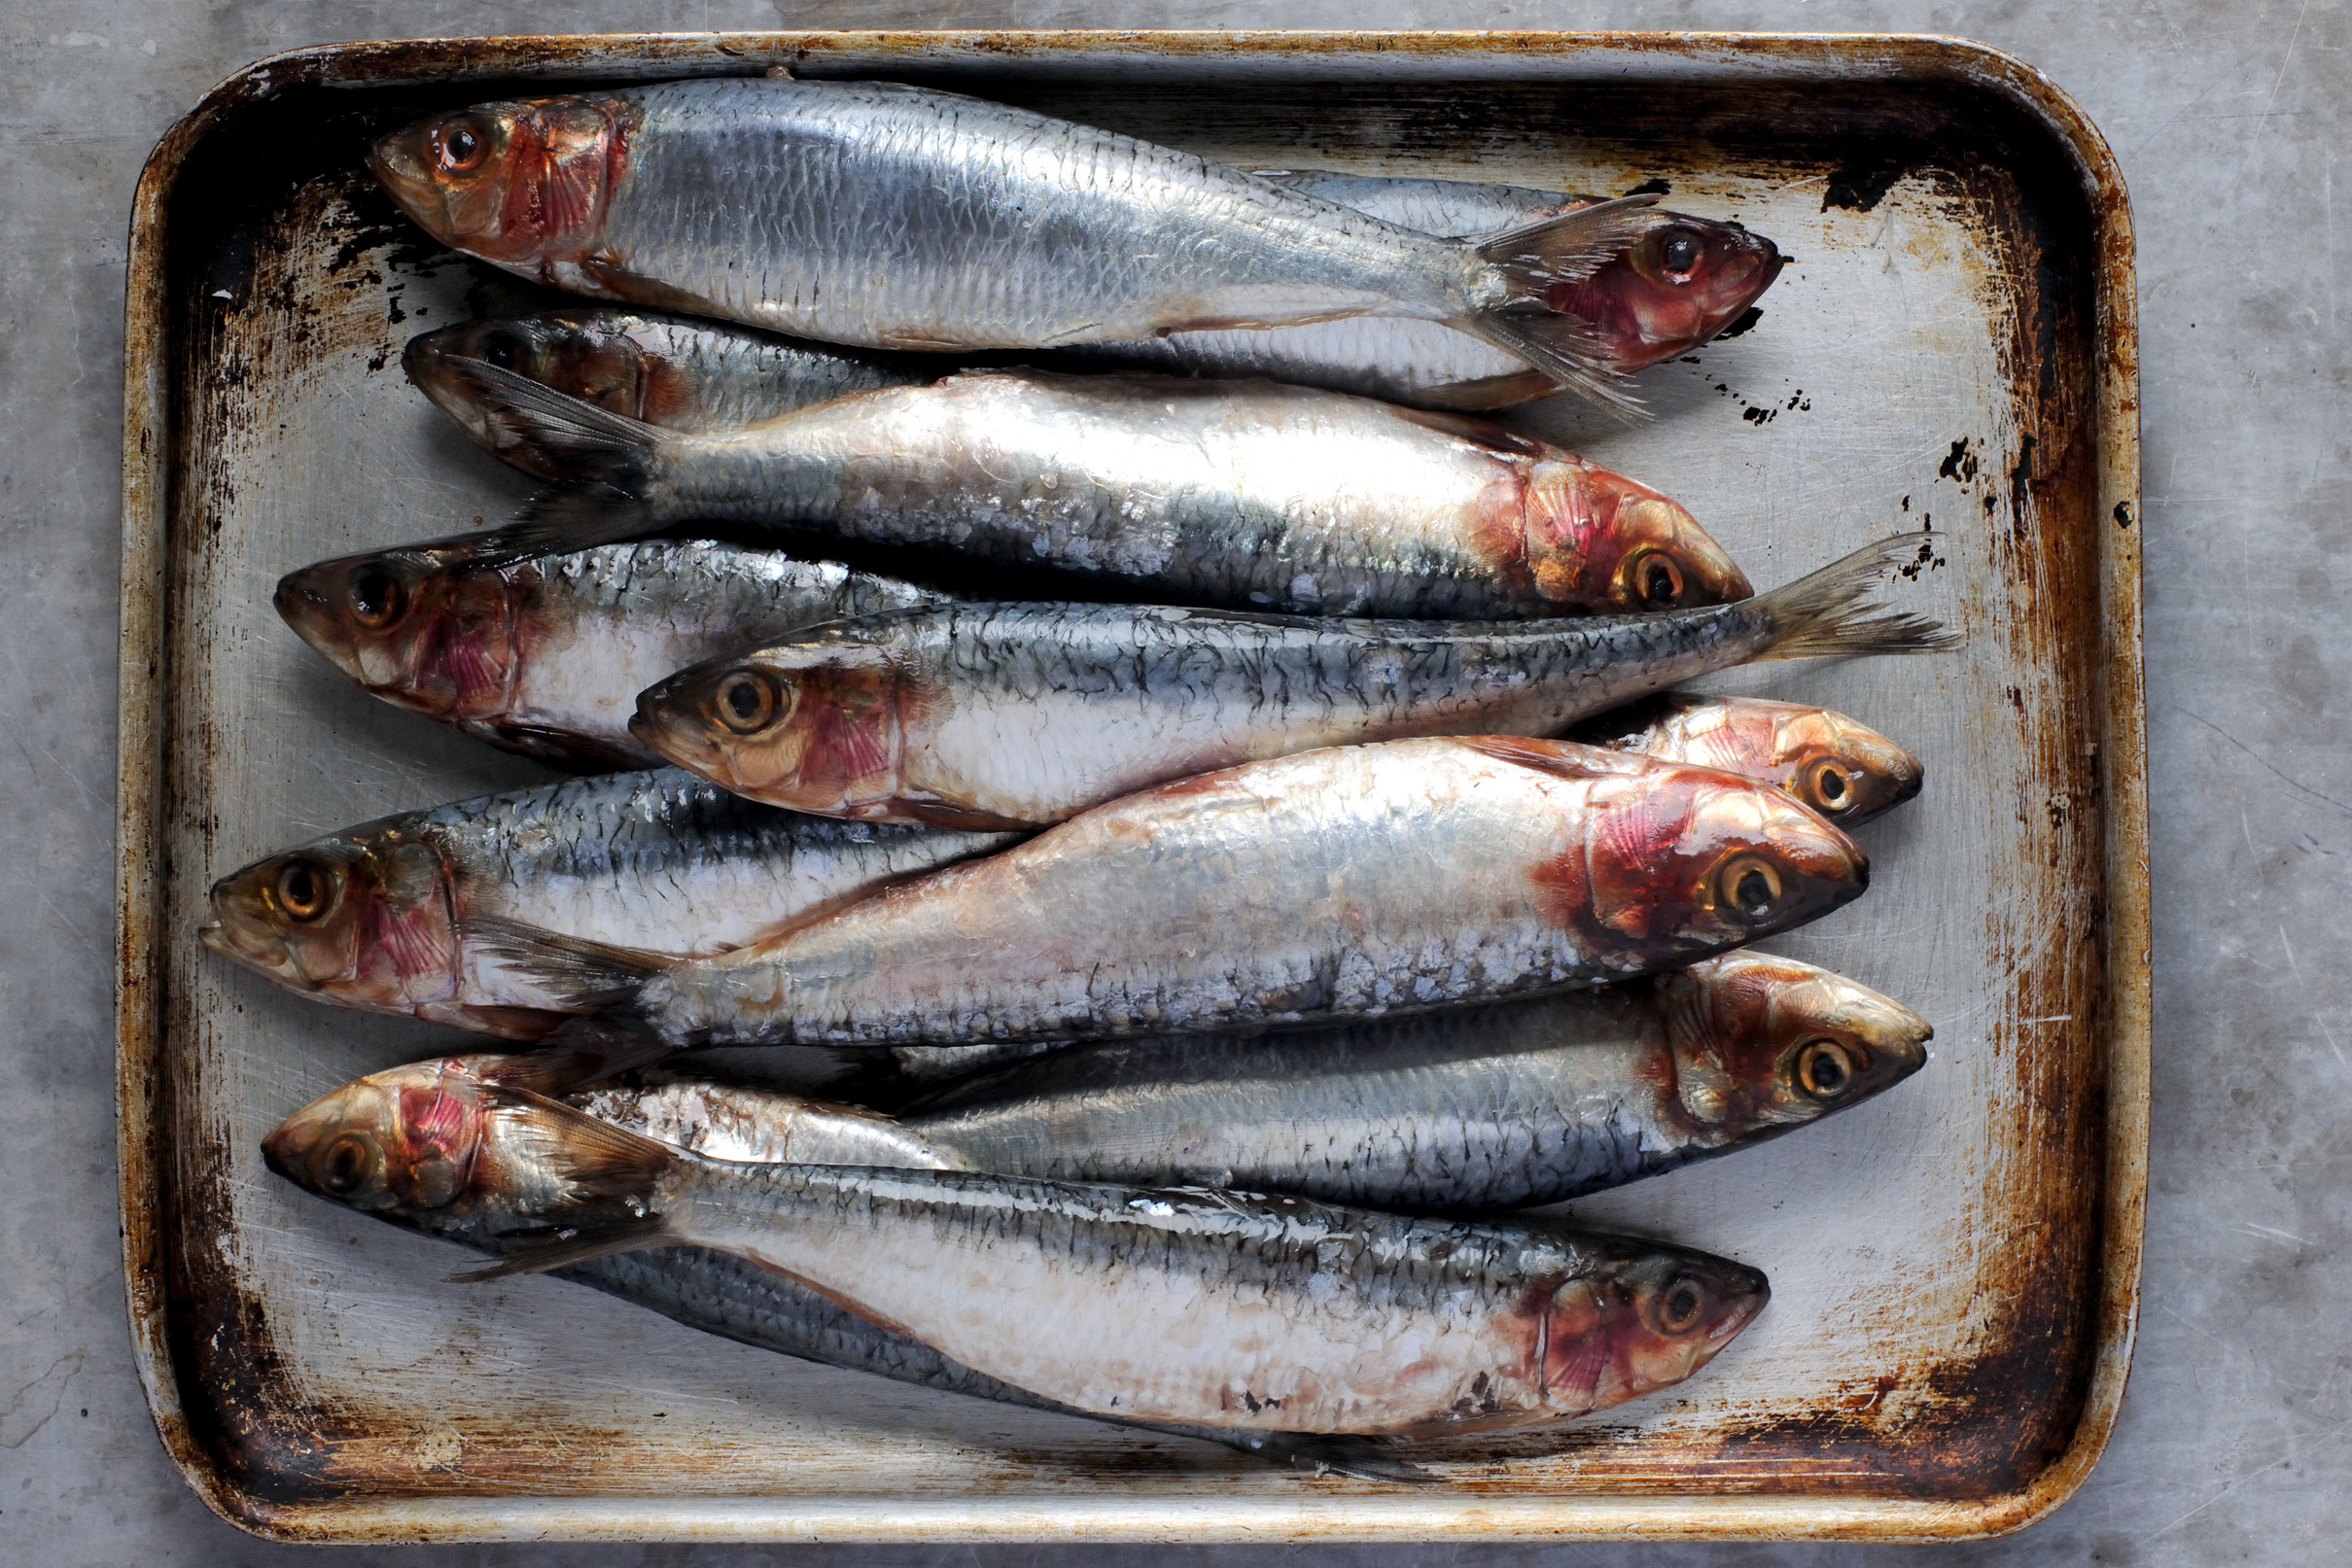 How to Cook Sardines - Great British Chefs